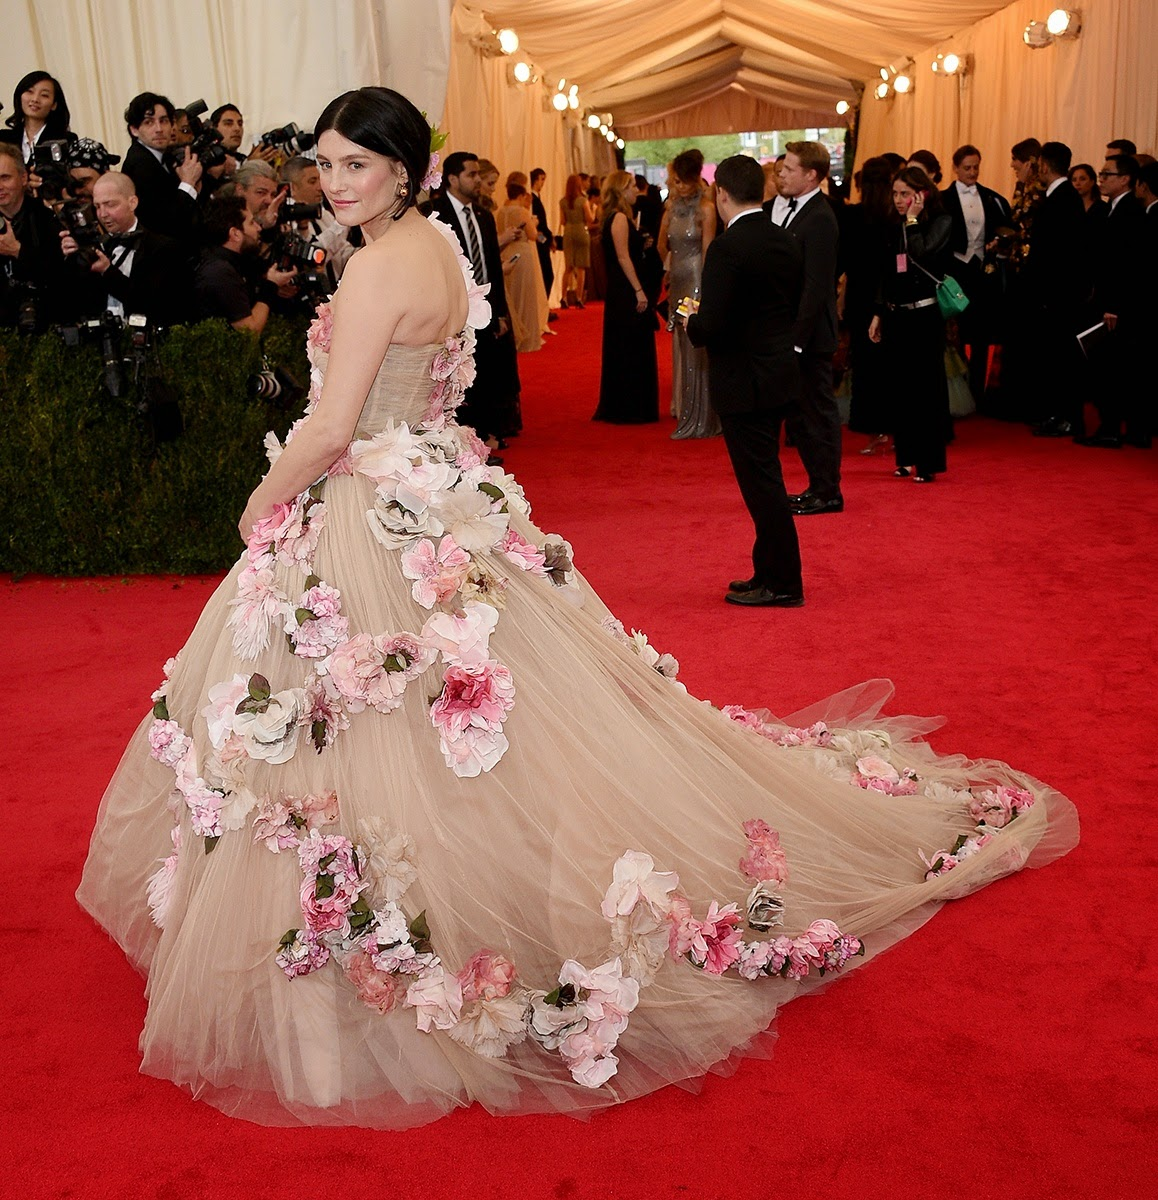 MET Gala 2014, Met Gala, Charles James, New Fashion, Latest Trends, Latest Fashion, Beyond Fashion, Fashion, Designers, Designer Clothes, Tabitha Simmons, Dolce & Gabbana, Fashion Blogger of Pakistan, Fashion online, Dress, Clothing